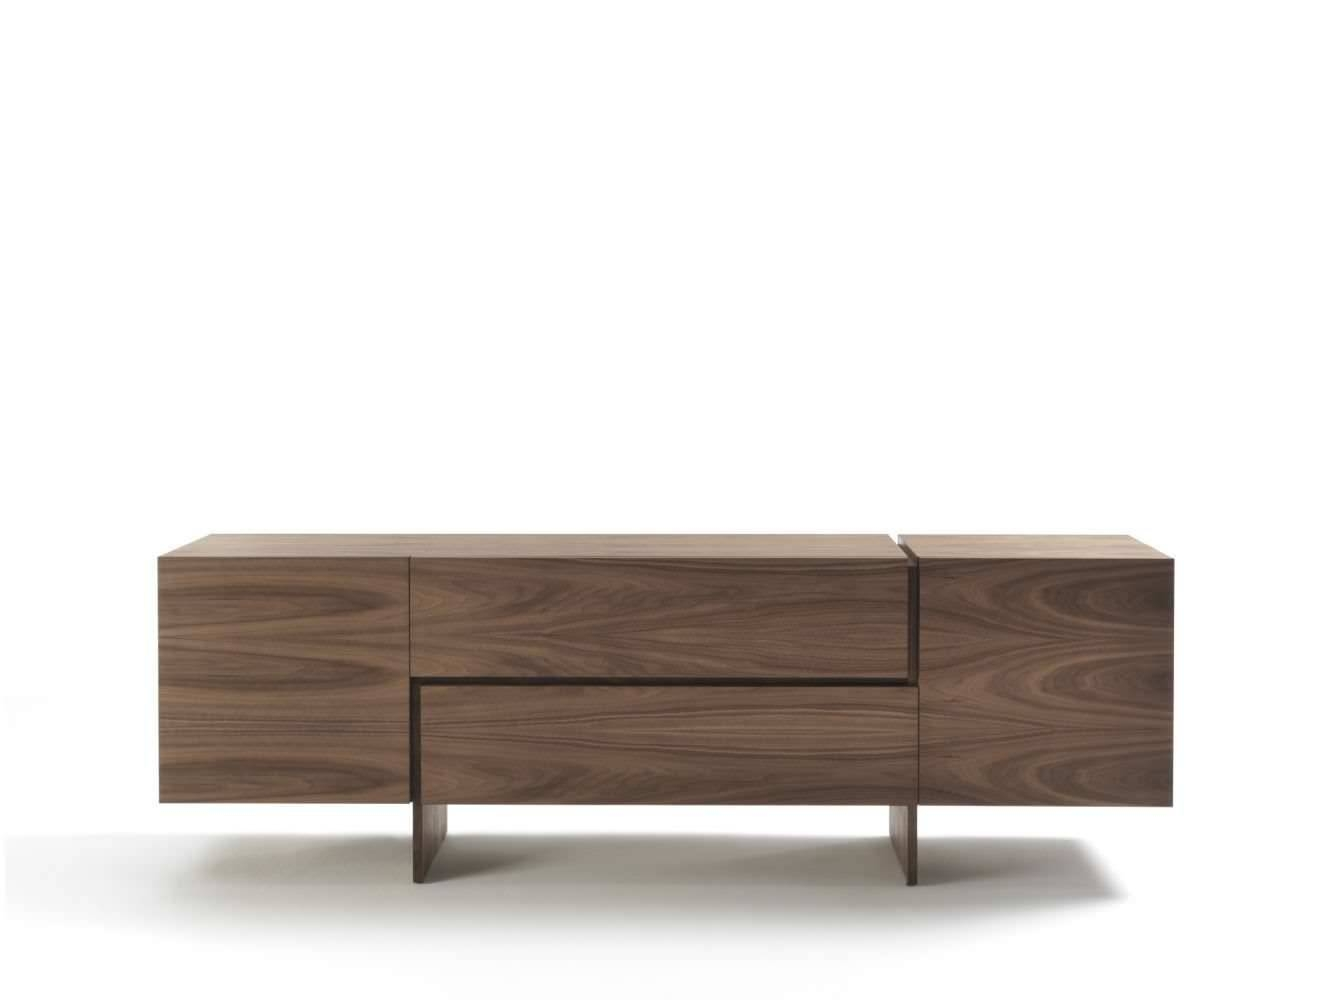 Contemporary Sideboard / Solid Wood - Akibartoli Design - Riva throughout Contemporary Wood Sideboards (Image 8 of 30)